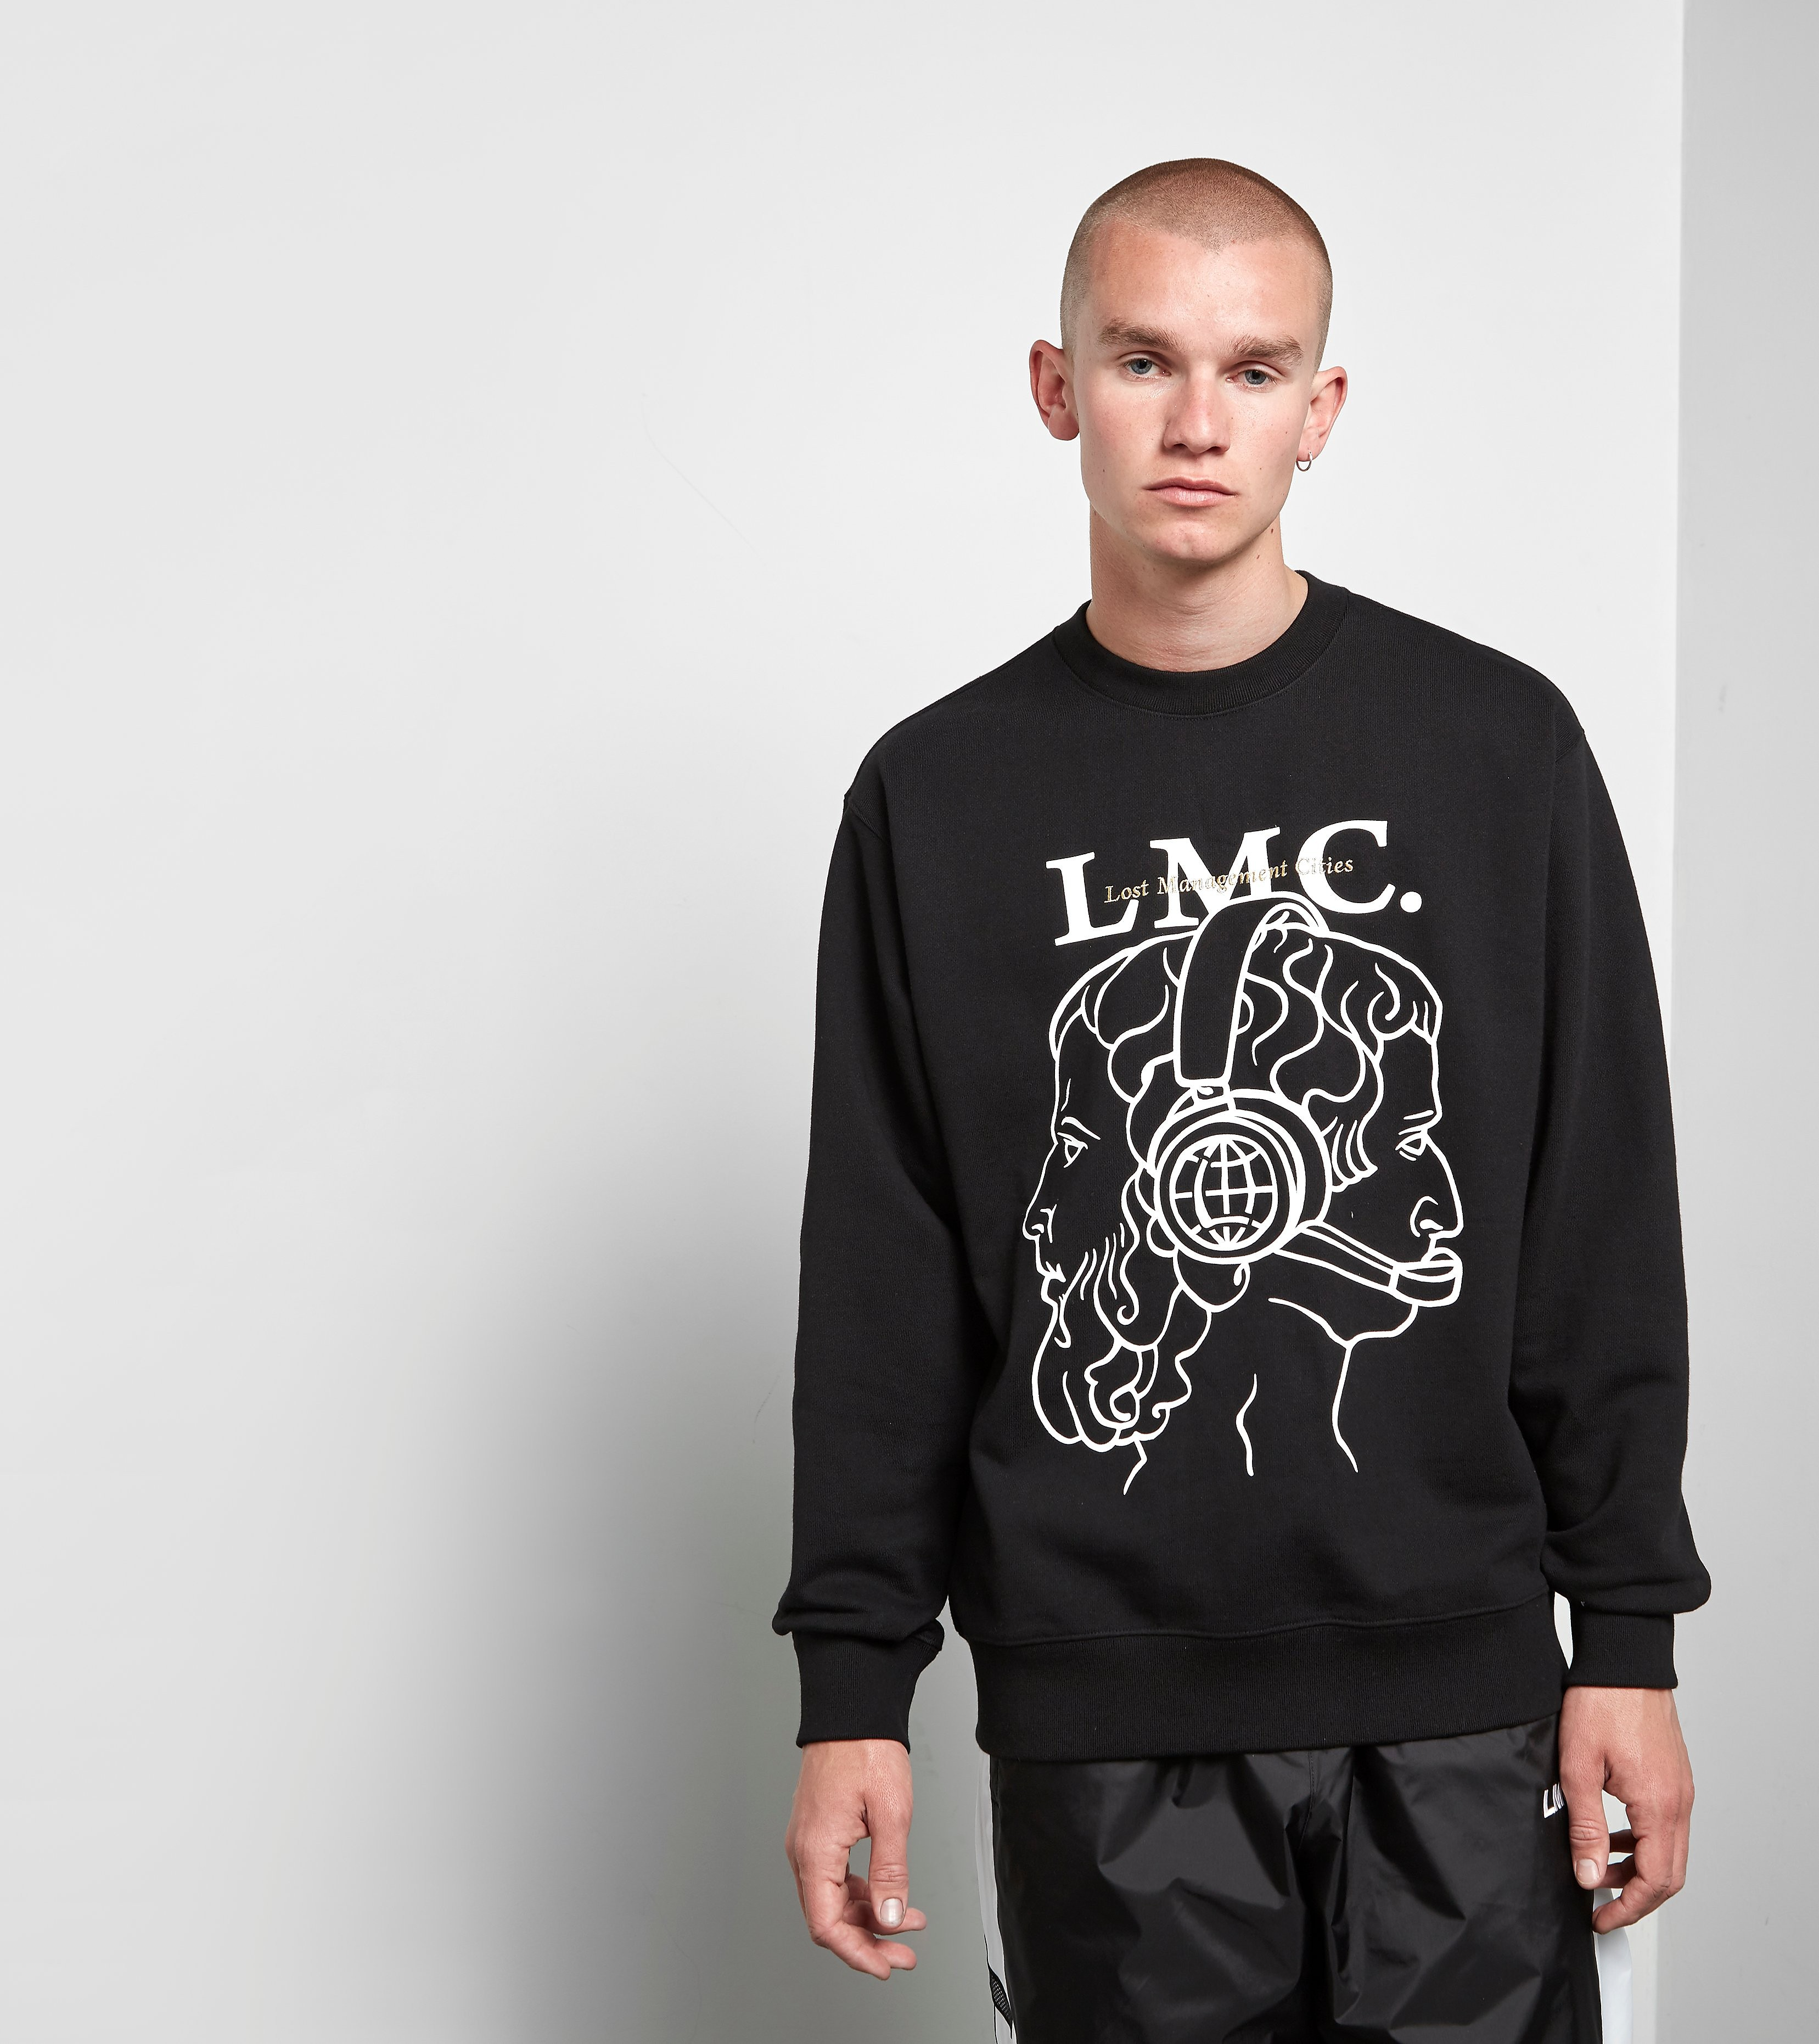 Lost Management Cities Janus Sweatshirt